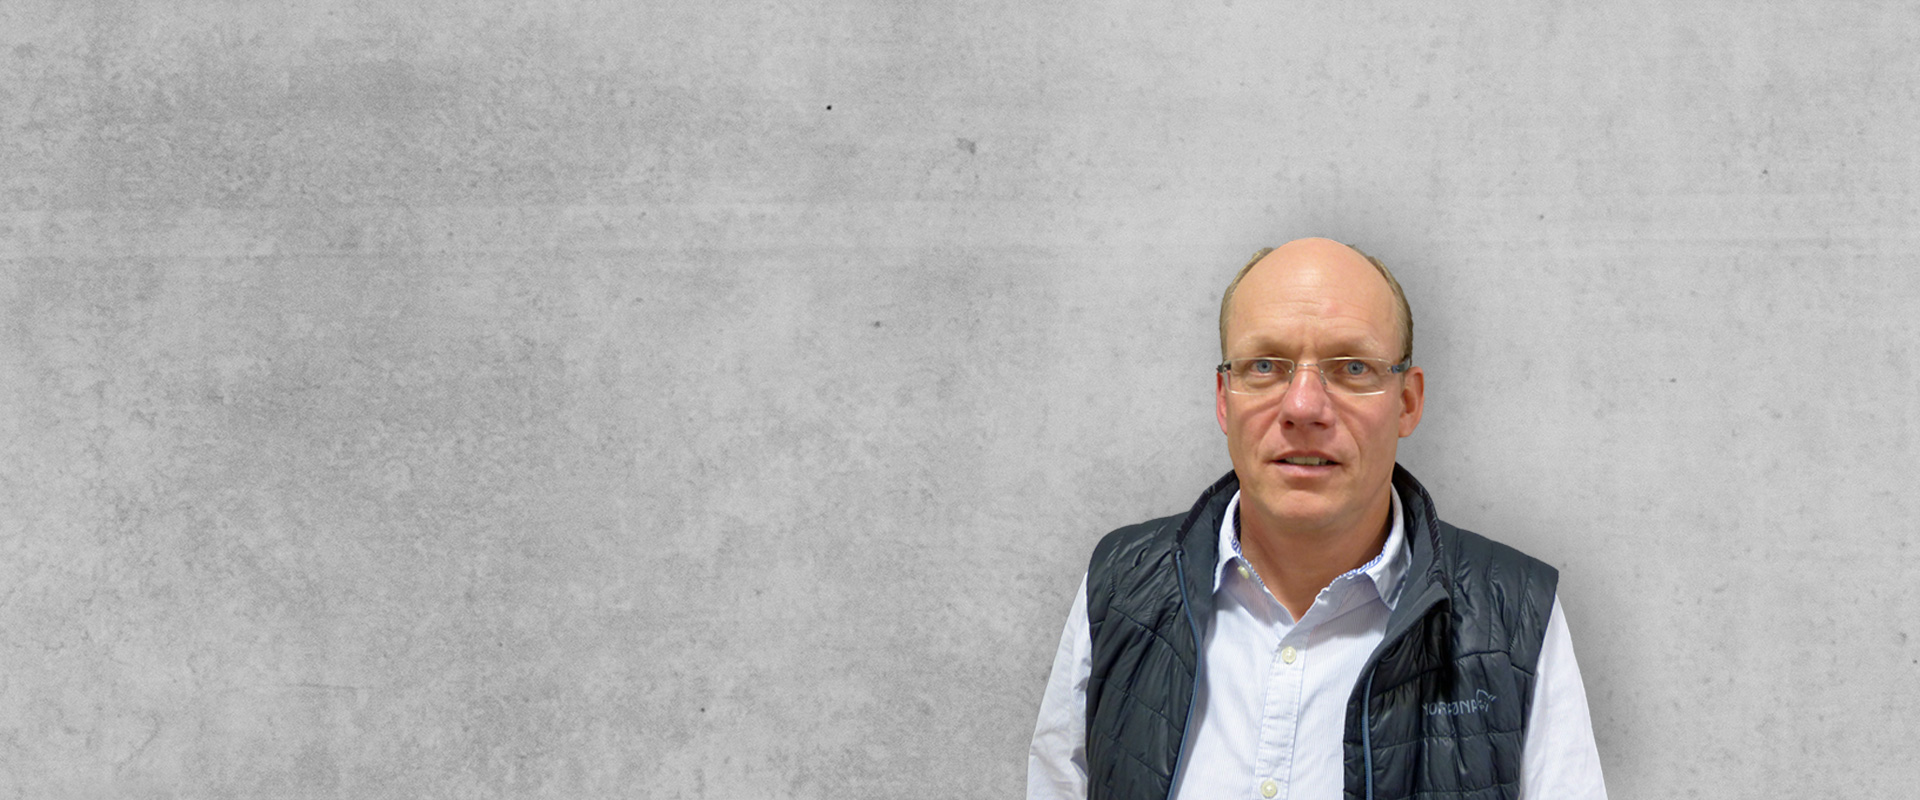 Lars Langmaack joined MC-Bauchemie as Technical Director TBM.